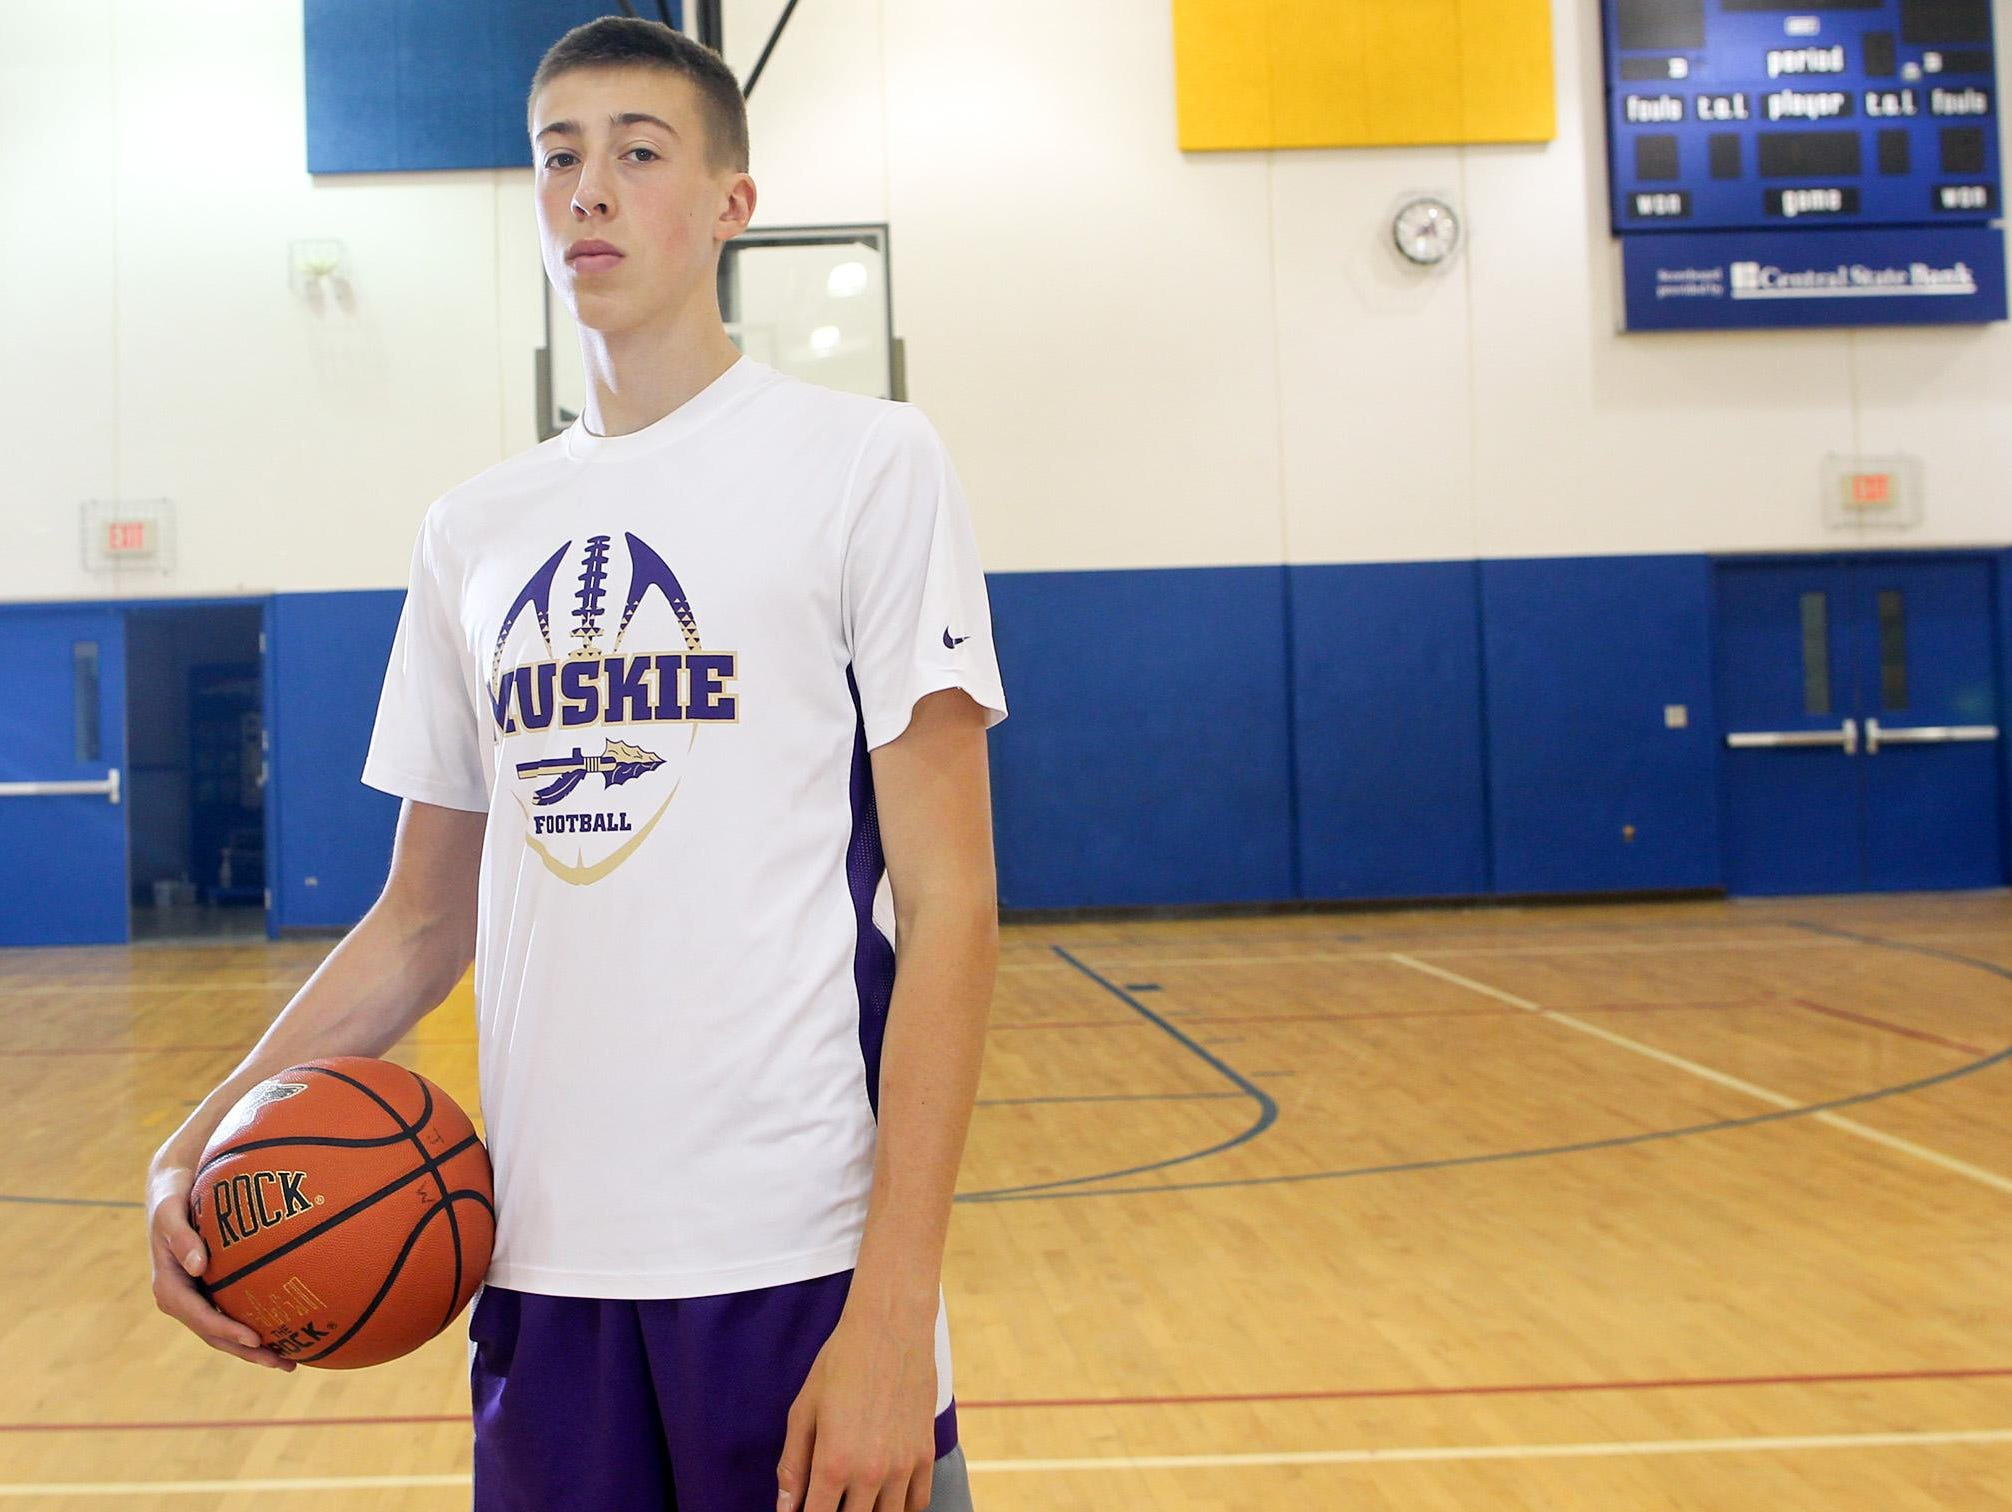 Muscatine's Joe Wieskamp verbally committed to play basketball at Iowa last month as a high school freshman.